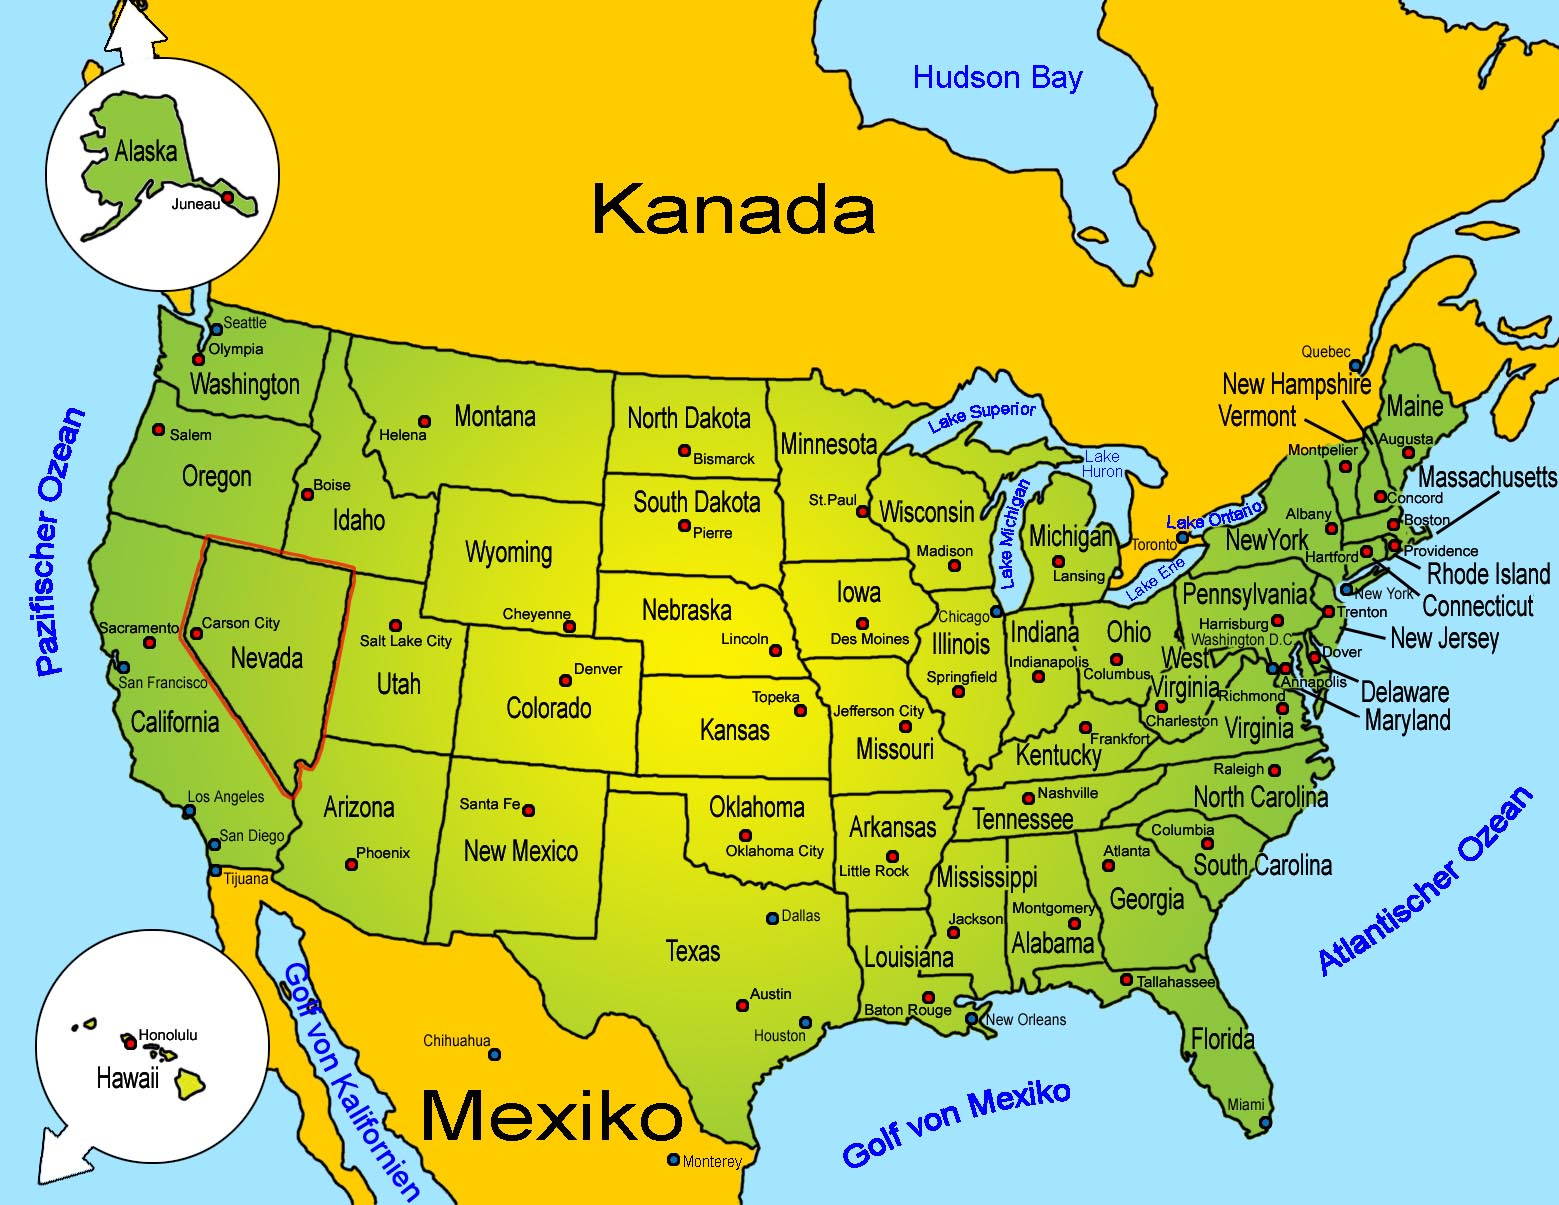 Location Map Of Nevada In USA Detailed Map Of Nevada State - Detailed map of us